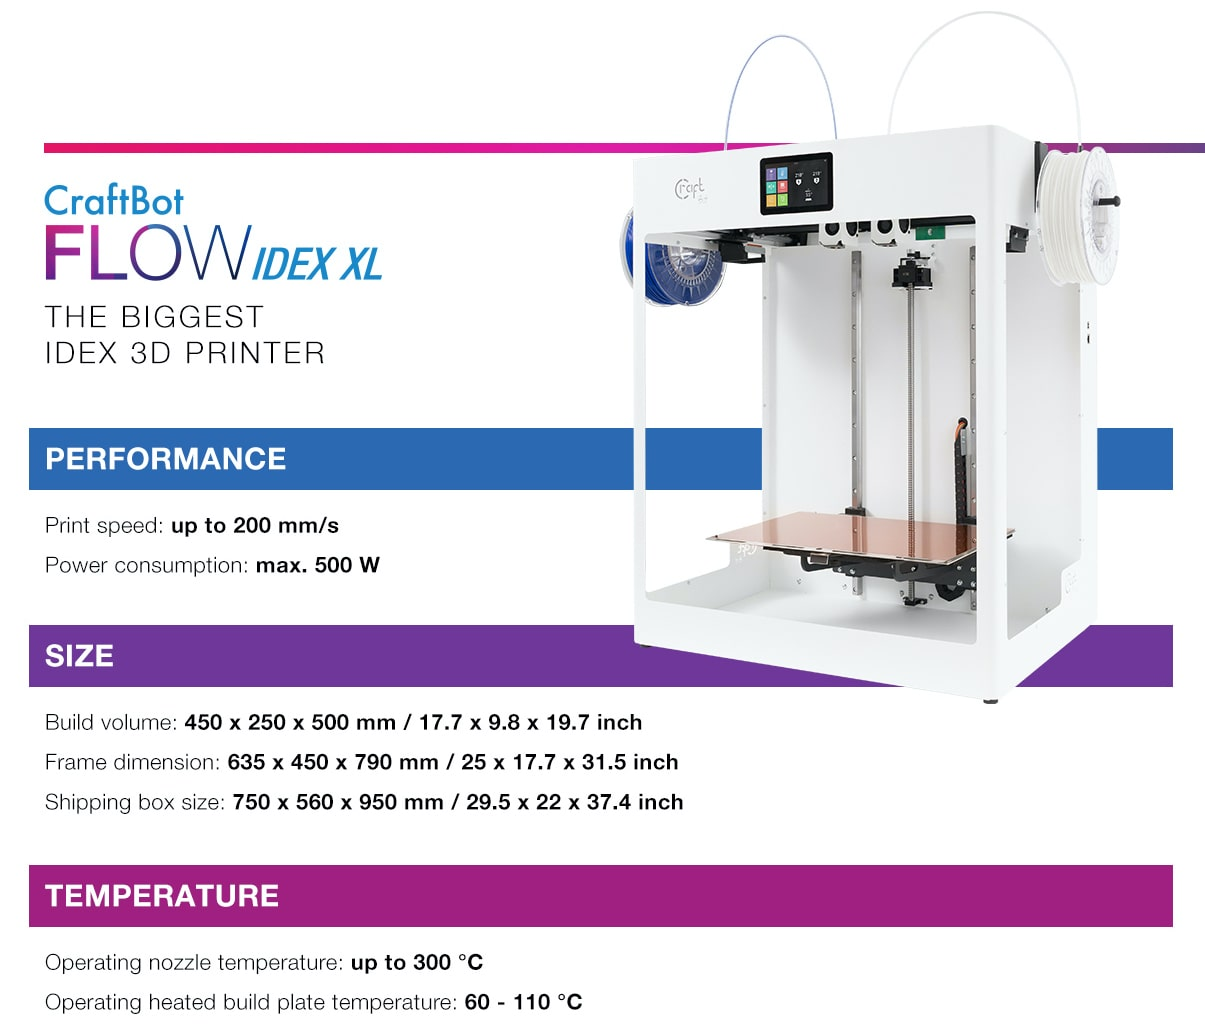 CraftBot FLOW IDEX XL 3D Printer Description 4